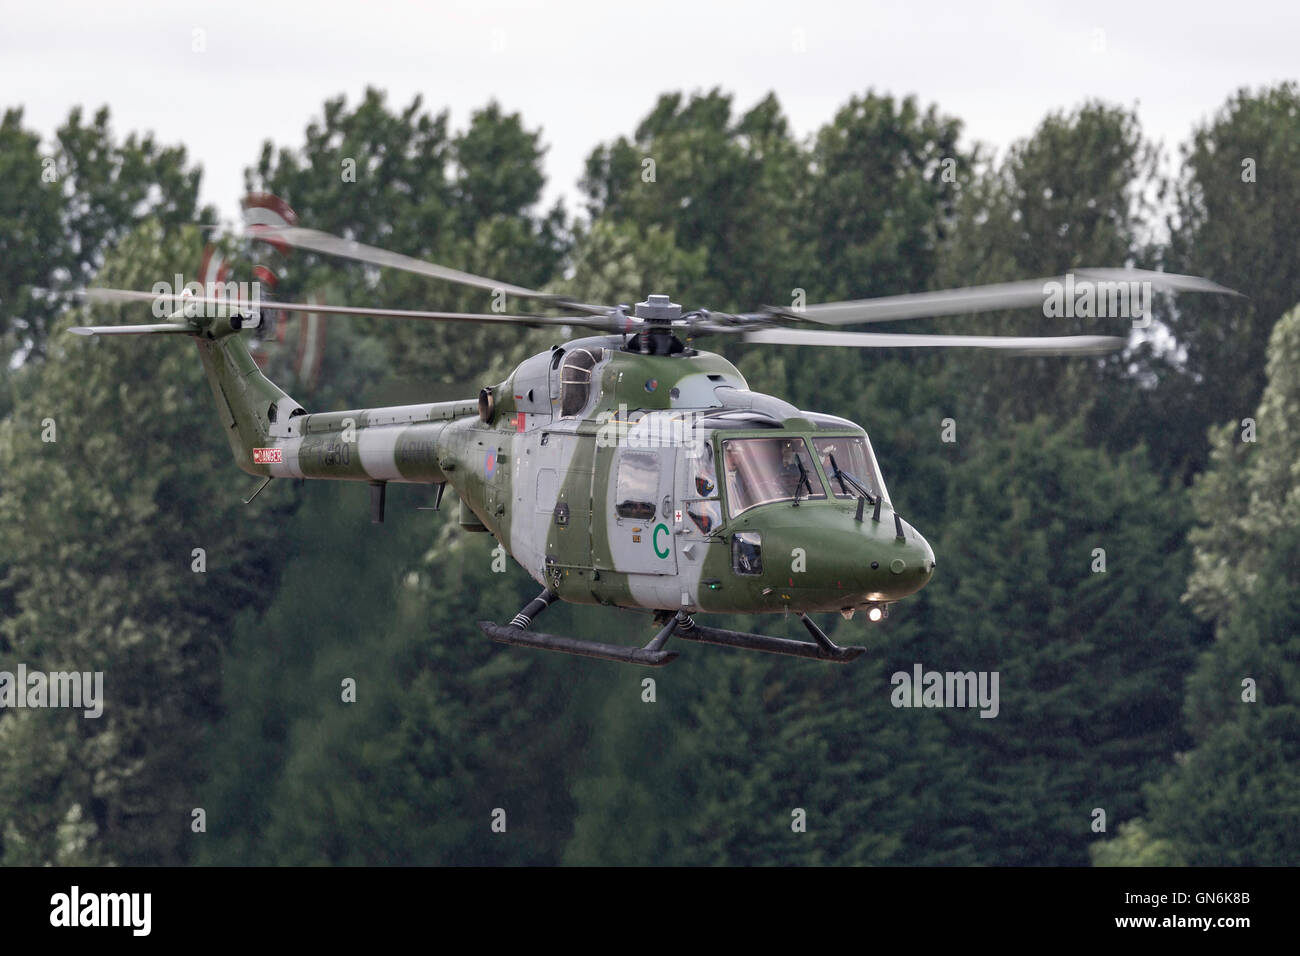 British Army (Royal Army) Air Corps (AAC) Westland Lynx AH7 battlefield reconnaissance helicopter. - Stock Image